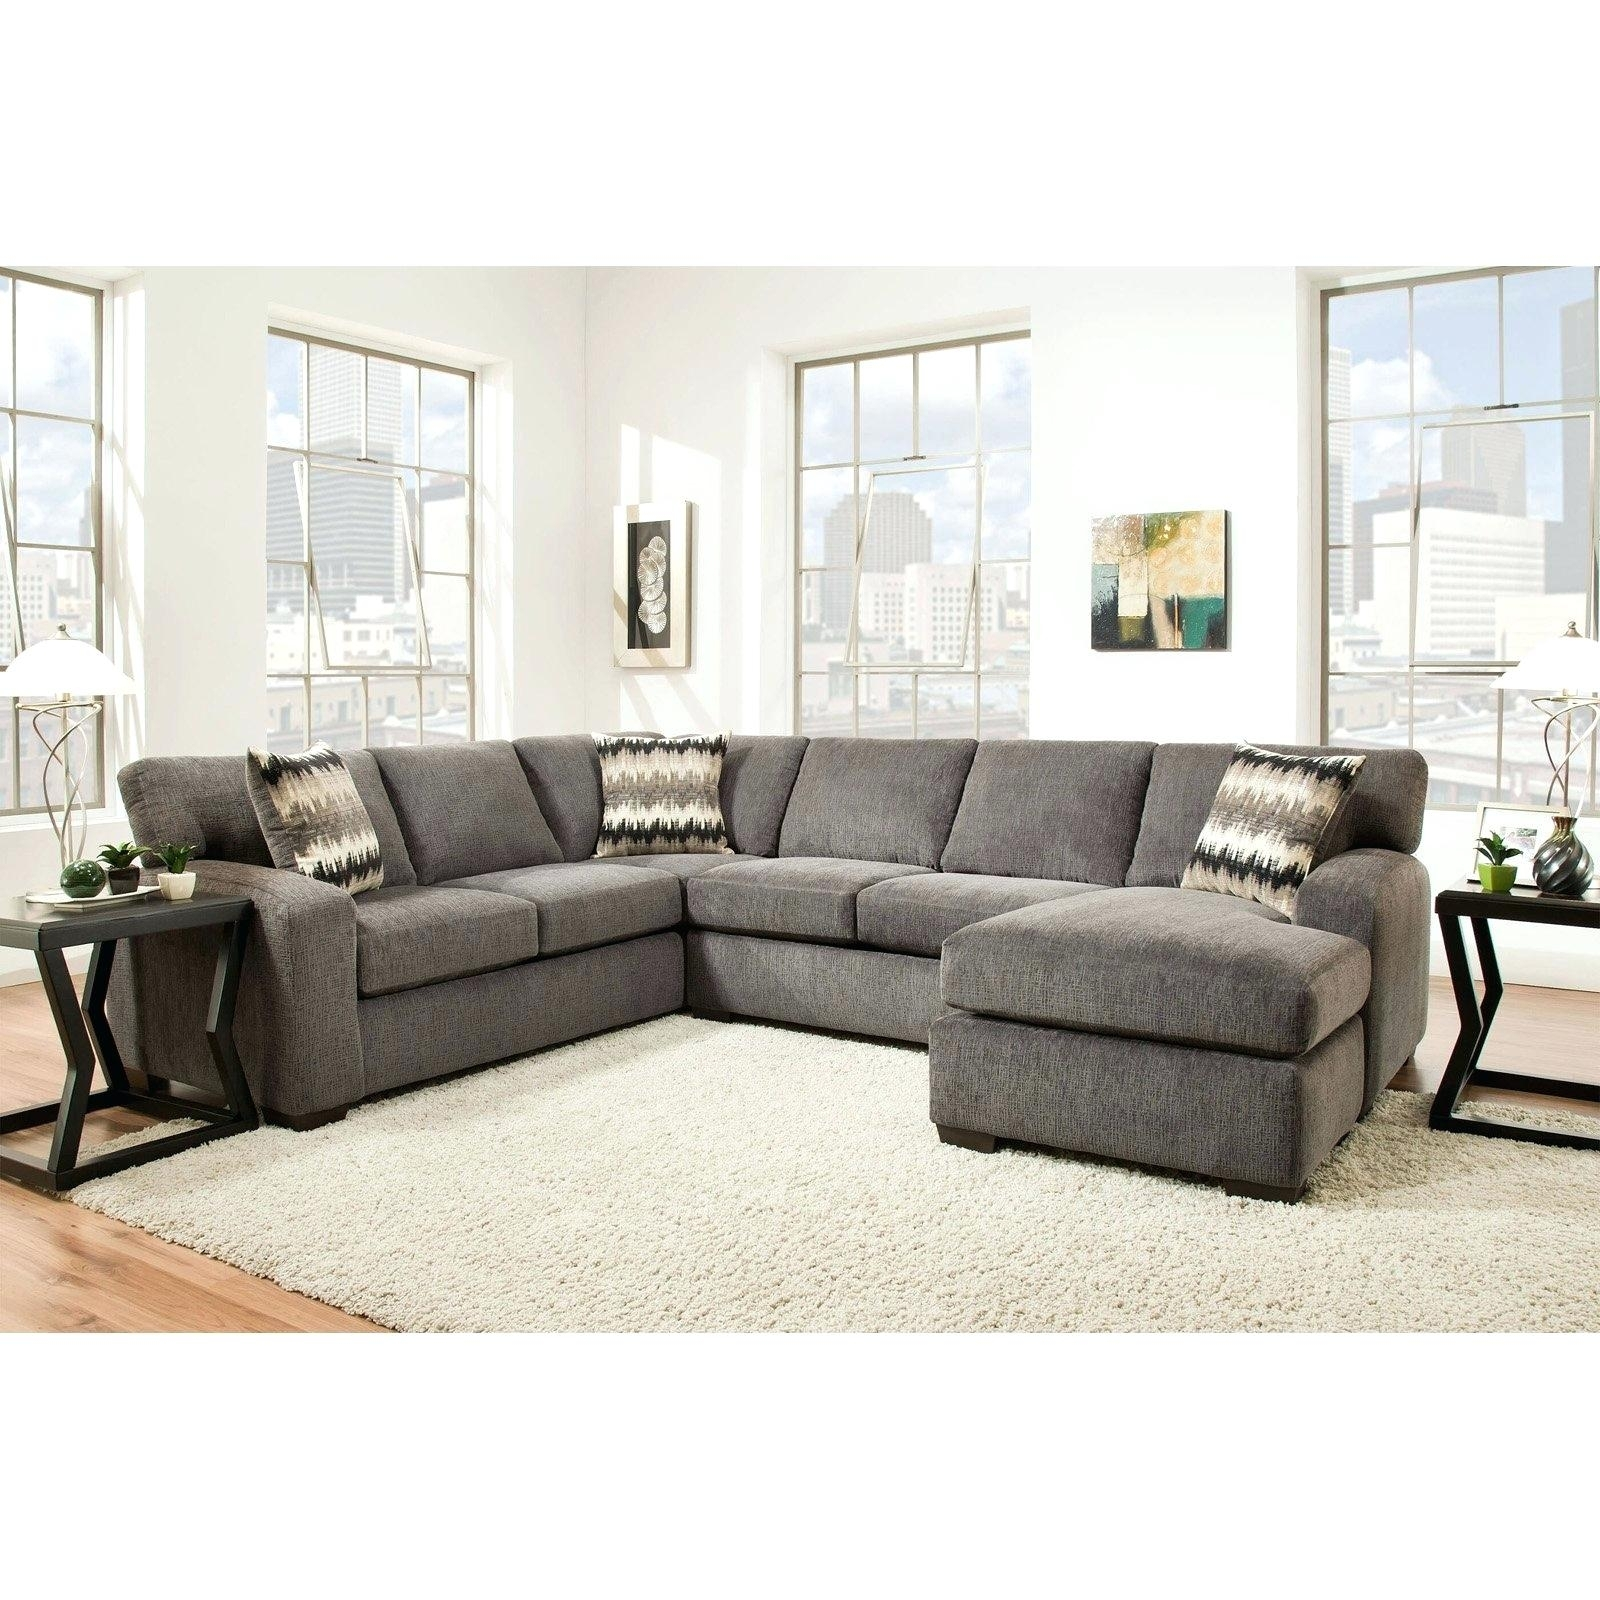 Inspirational Pictures Of Sectional Couches For Denali Light Grey 6 Inside Denali Light Grey 6 Piece Reclining Sectionals With 2 Power Headrests (View 18 of 25)